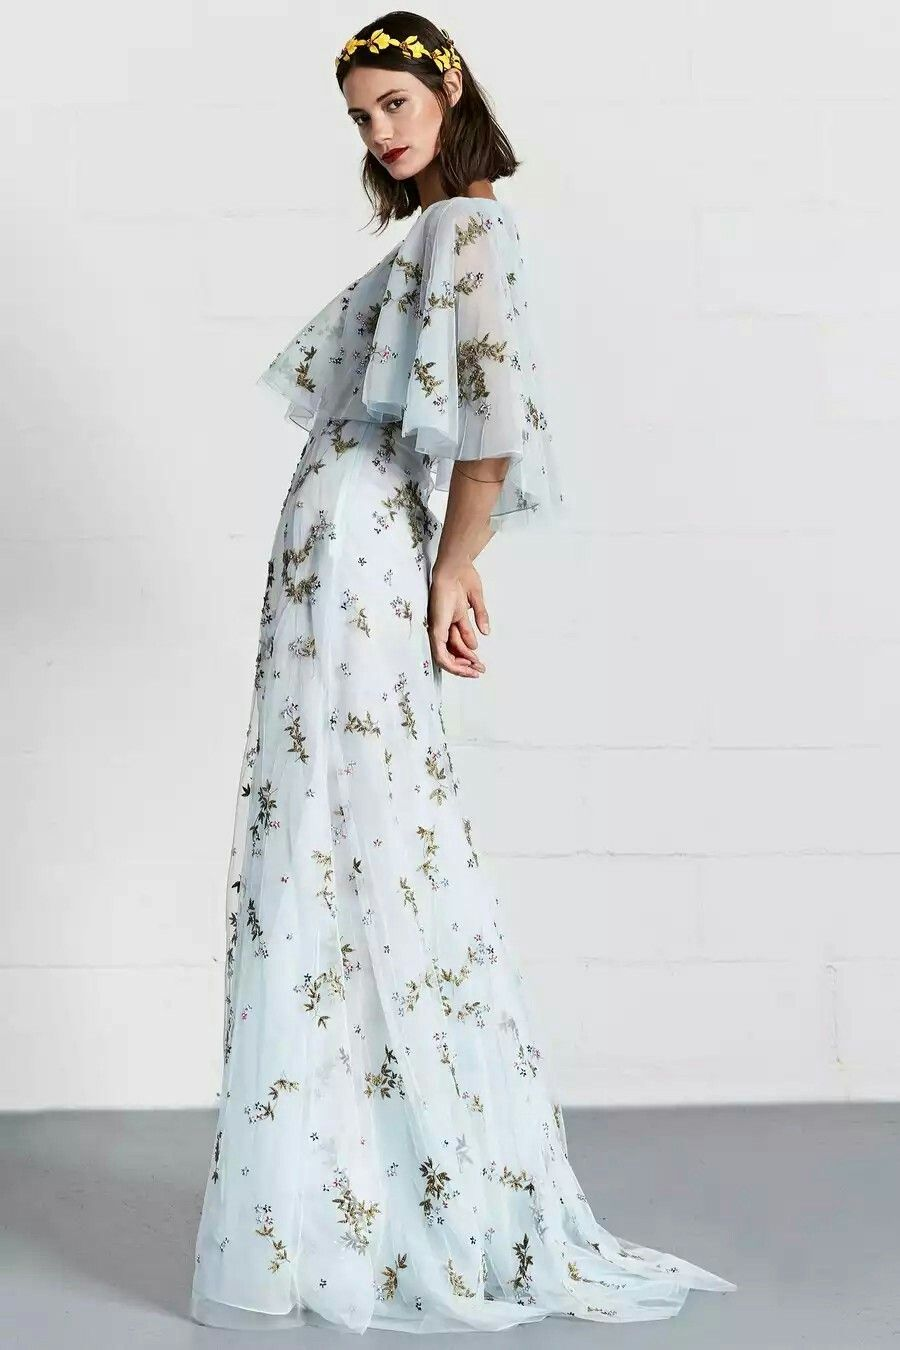 Pin by phan vỹ thy on fashionistaeach design is a soul pinterest